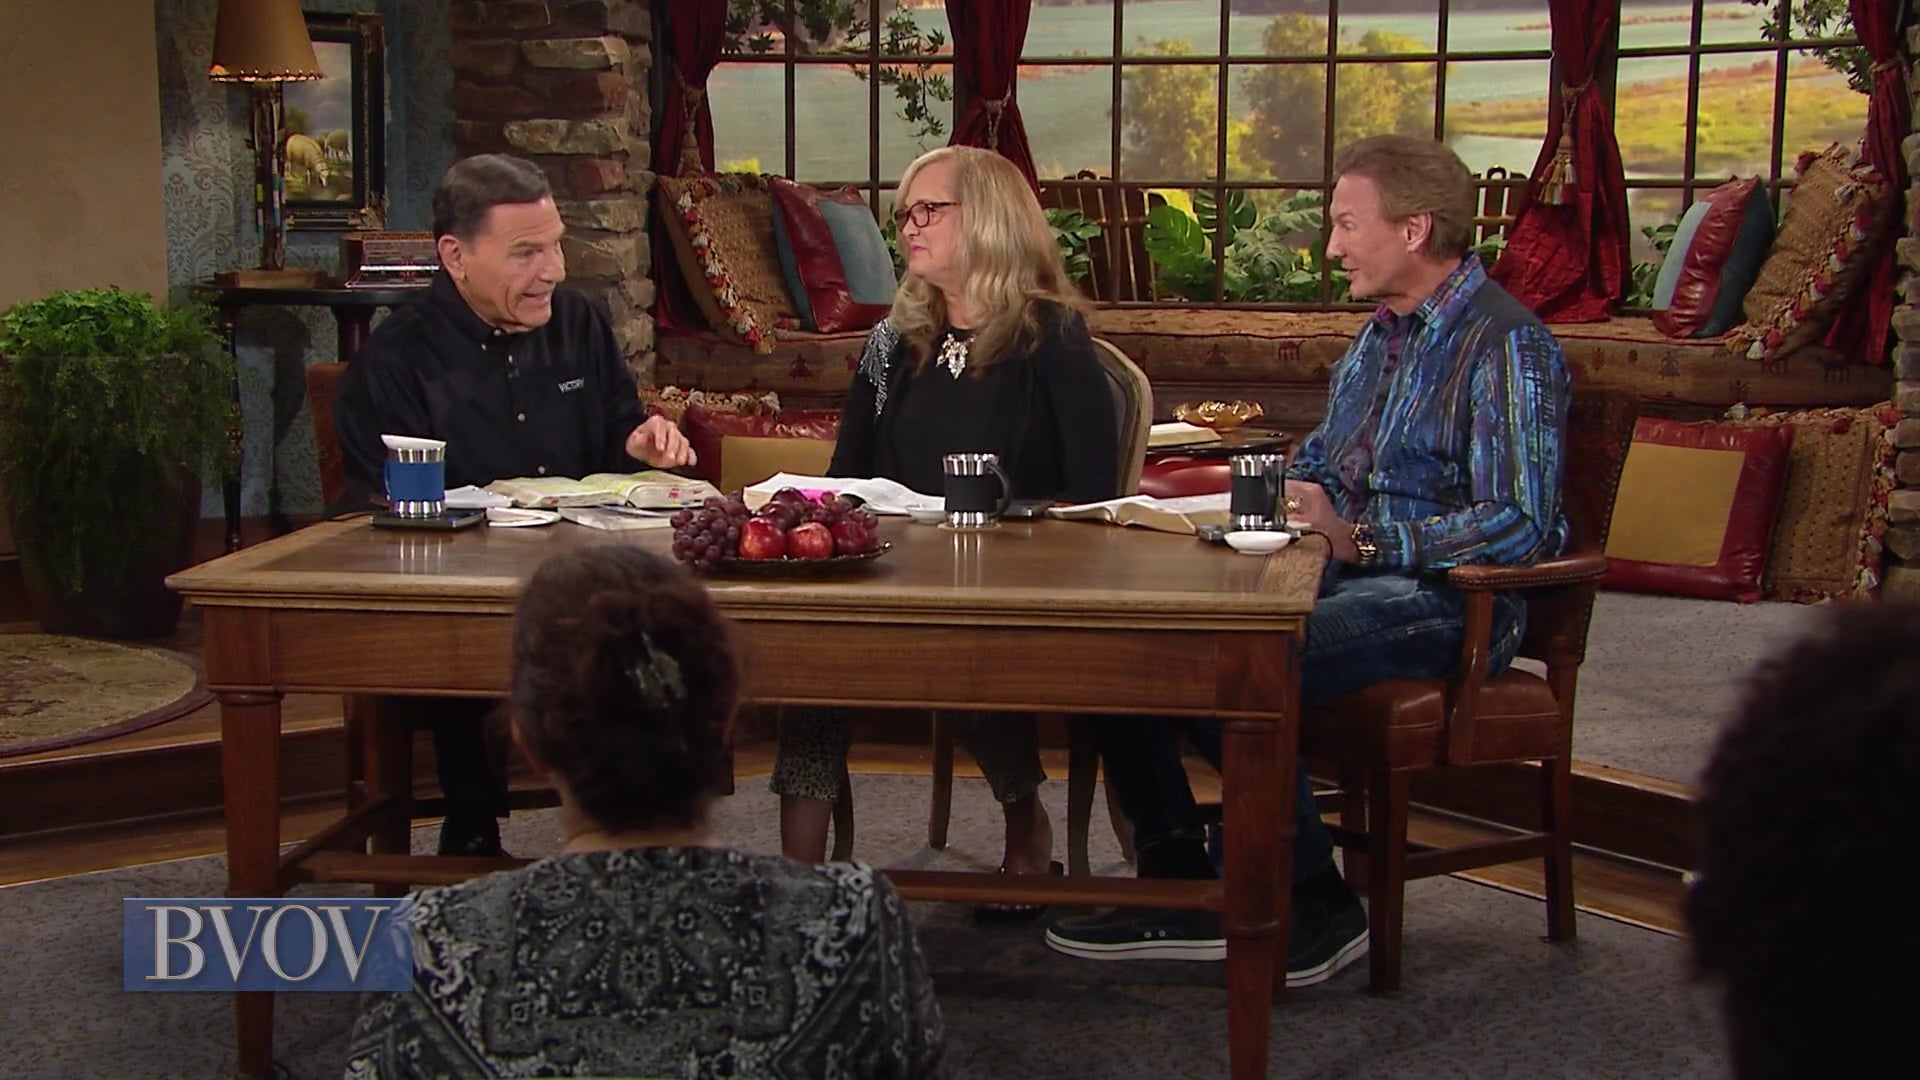 Watch Kenneth Copeland, with Dr. Don and Mary Colbert on Believer's Voice of Victory as they discuss how praying early in the morning is the kind of prayer that changes everything. Listen in as Mary shares why rising up early to speak to your Father in the cool of the day will open the door to amazing moments with Him.